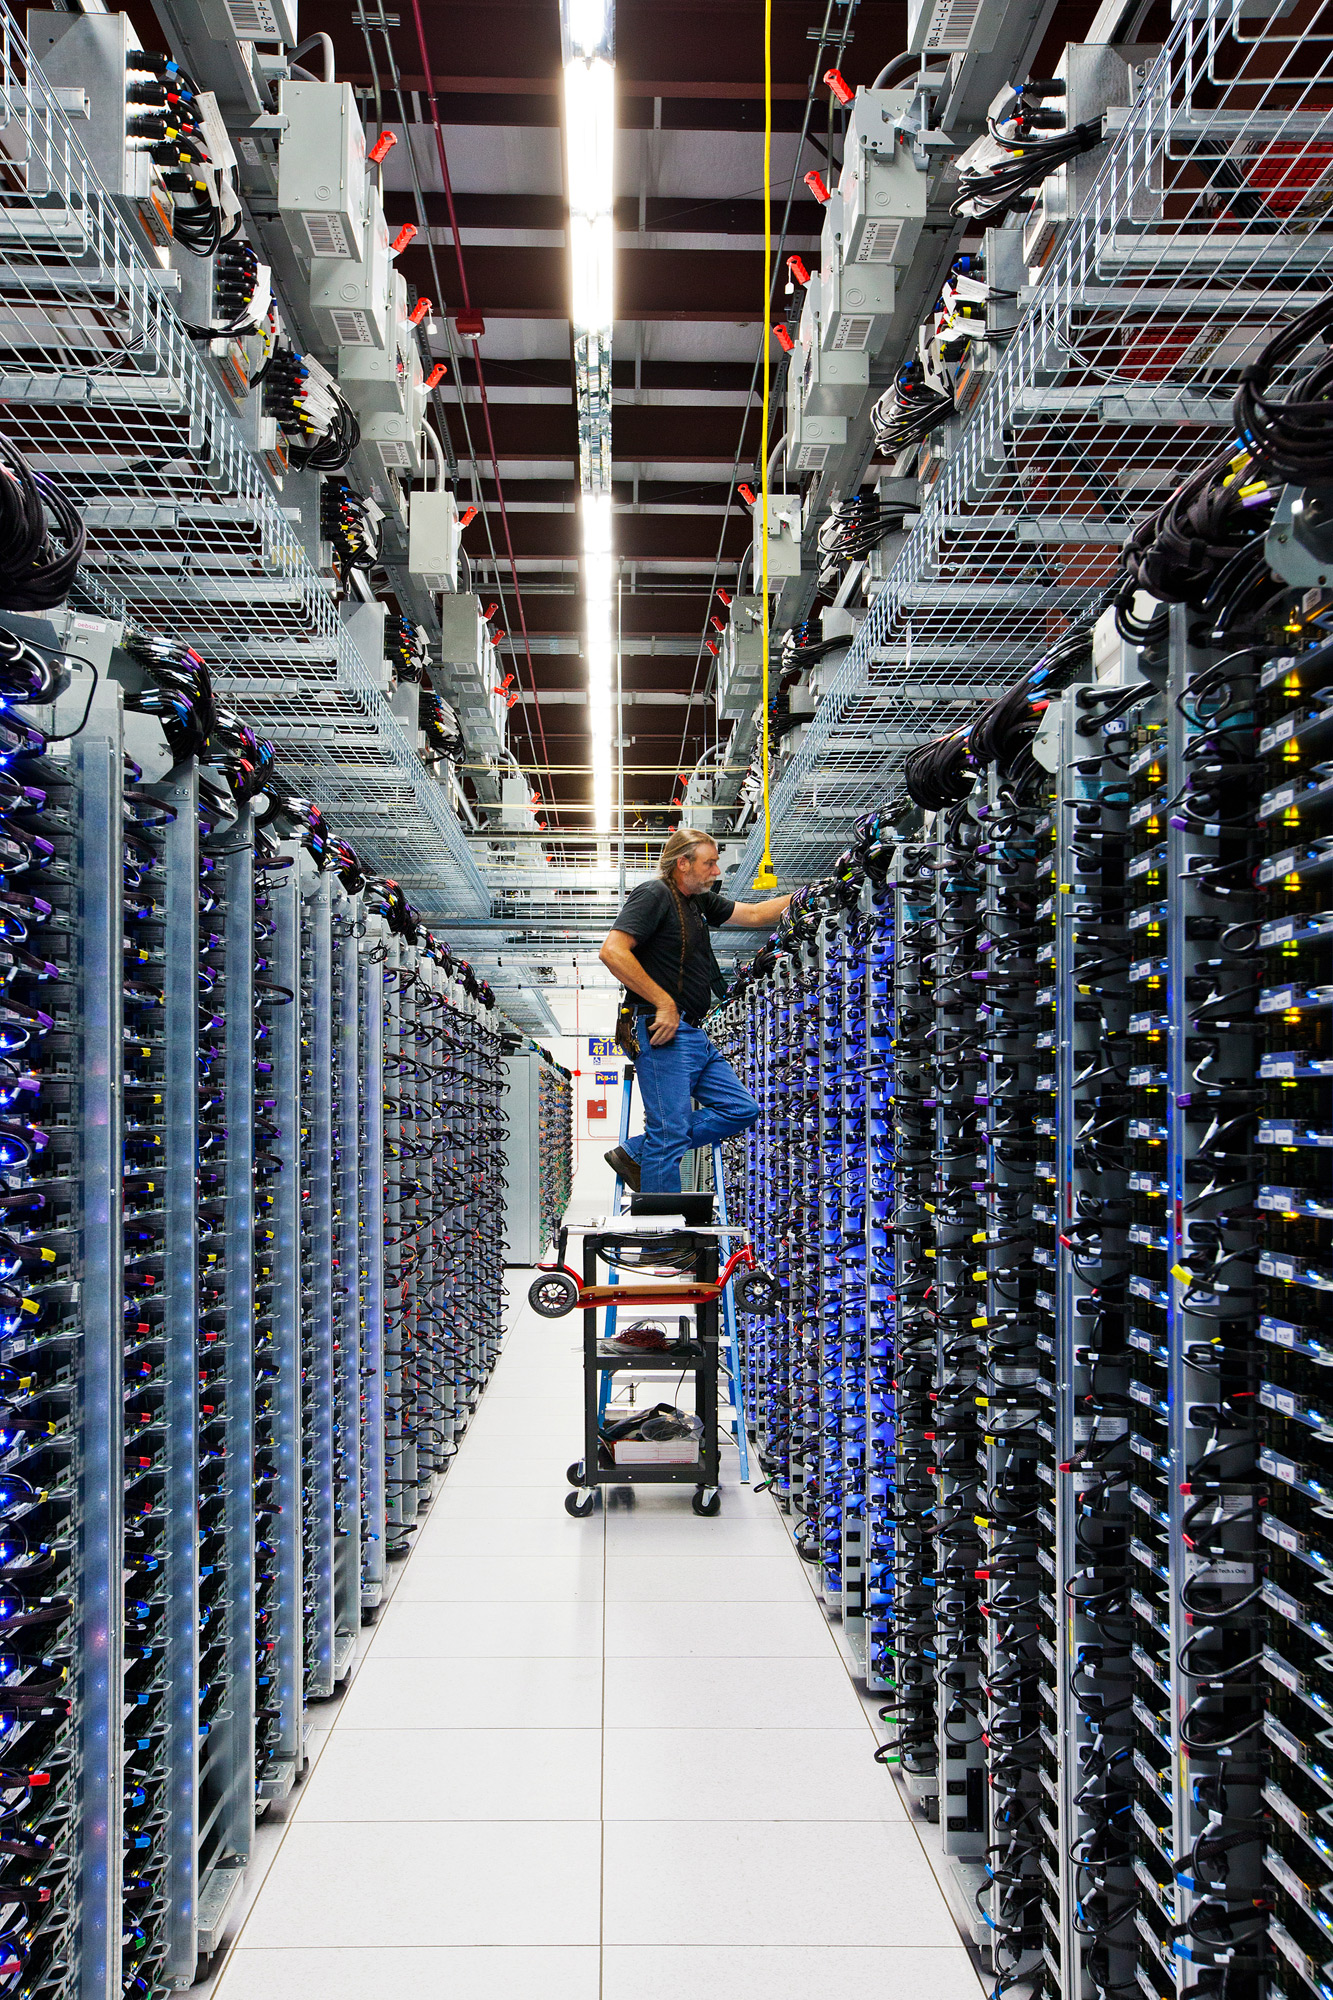 Rows and rows of servers...